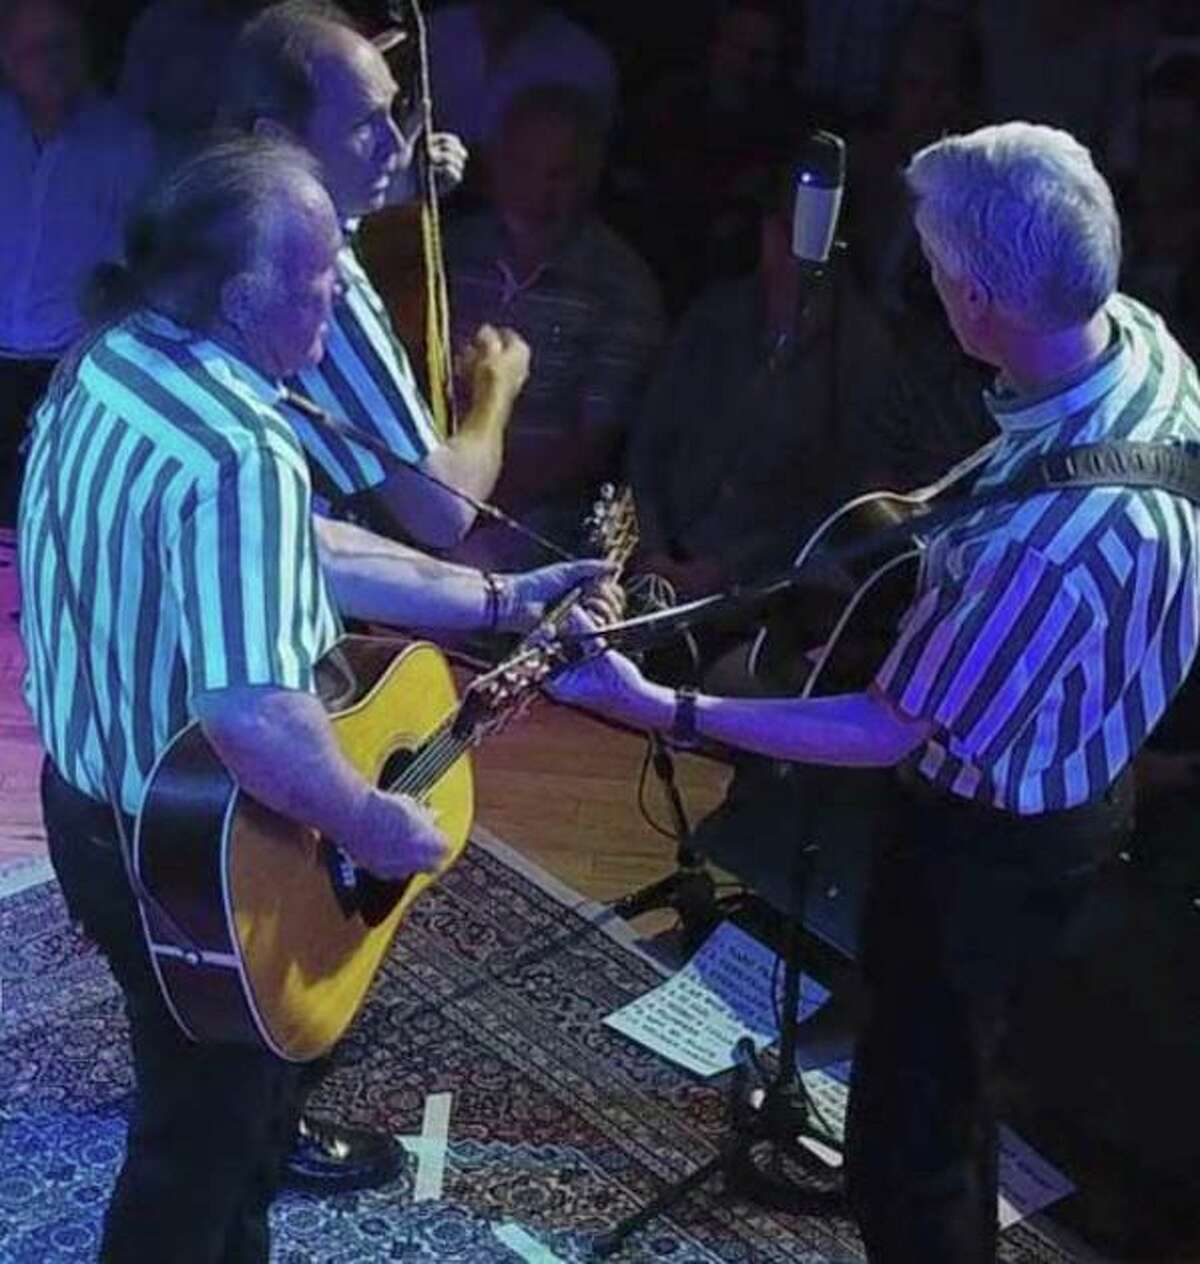 The Kingston Trio's Legacy Tour is at the Danbury Palace Saturday, June 20.